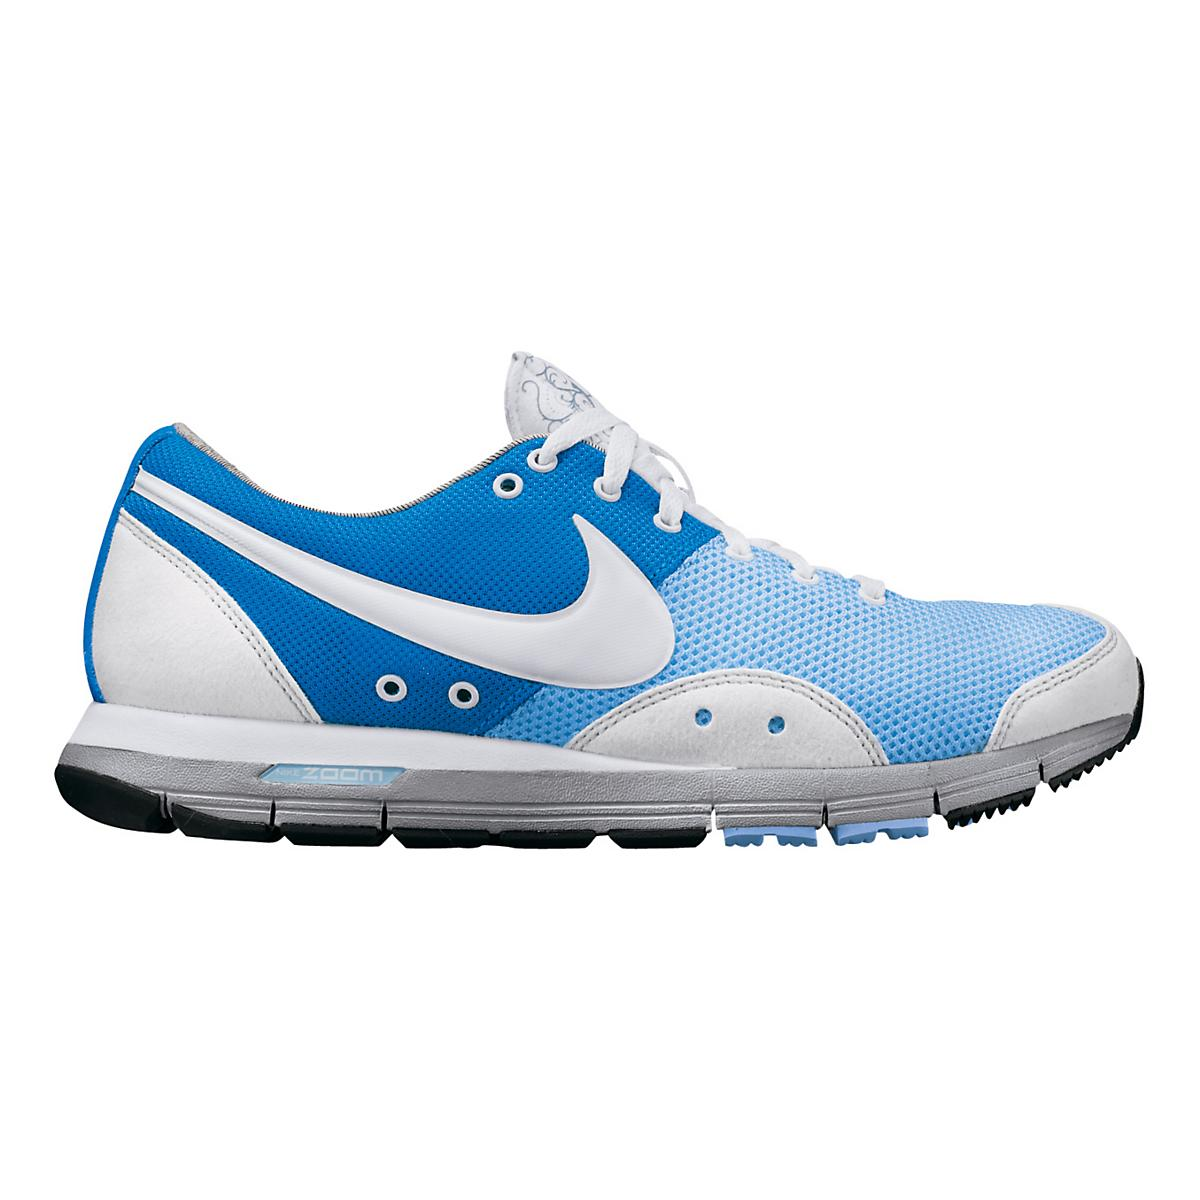 Womens Nike Air Zoom Hayward+ 3 Running Shoe at Road Runner Sports 8167a5a3ce